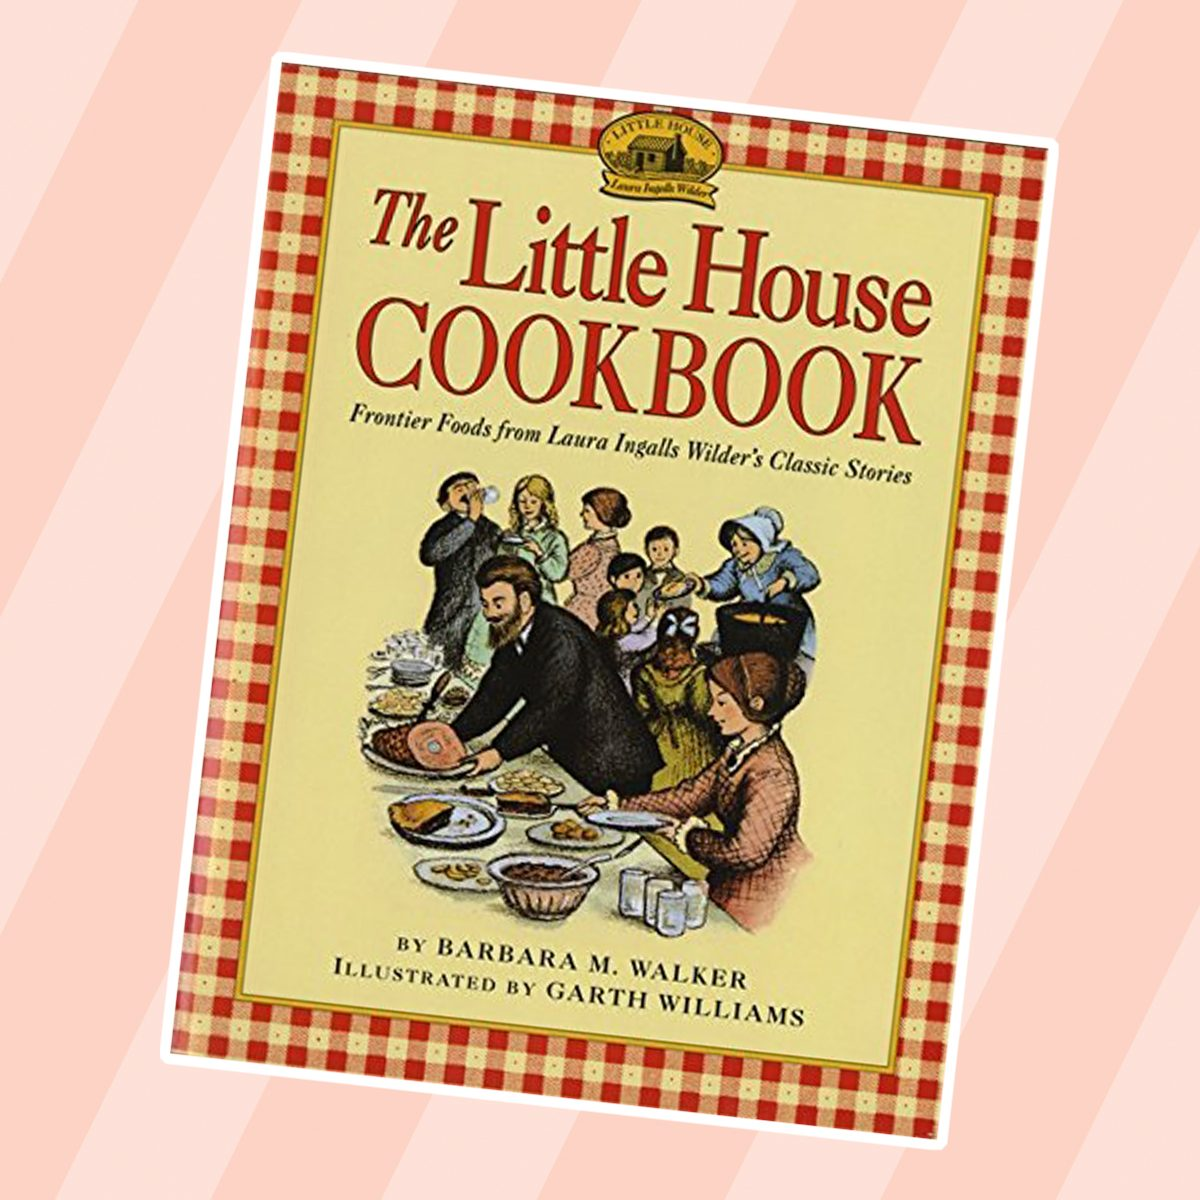 The Little House Cookbook: Frontier Foods from Laura Ingalls Wilder's Classic Storie